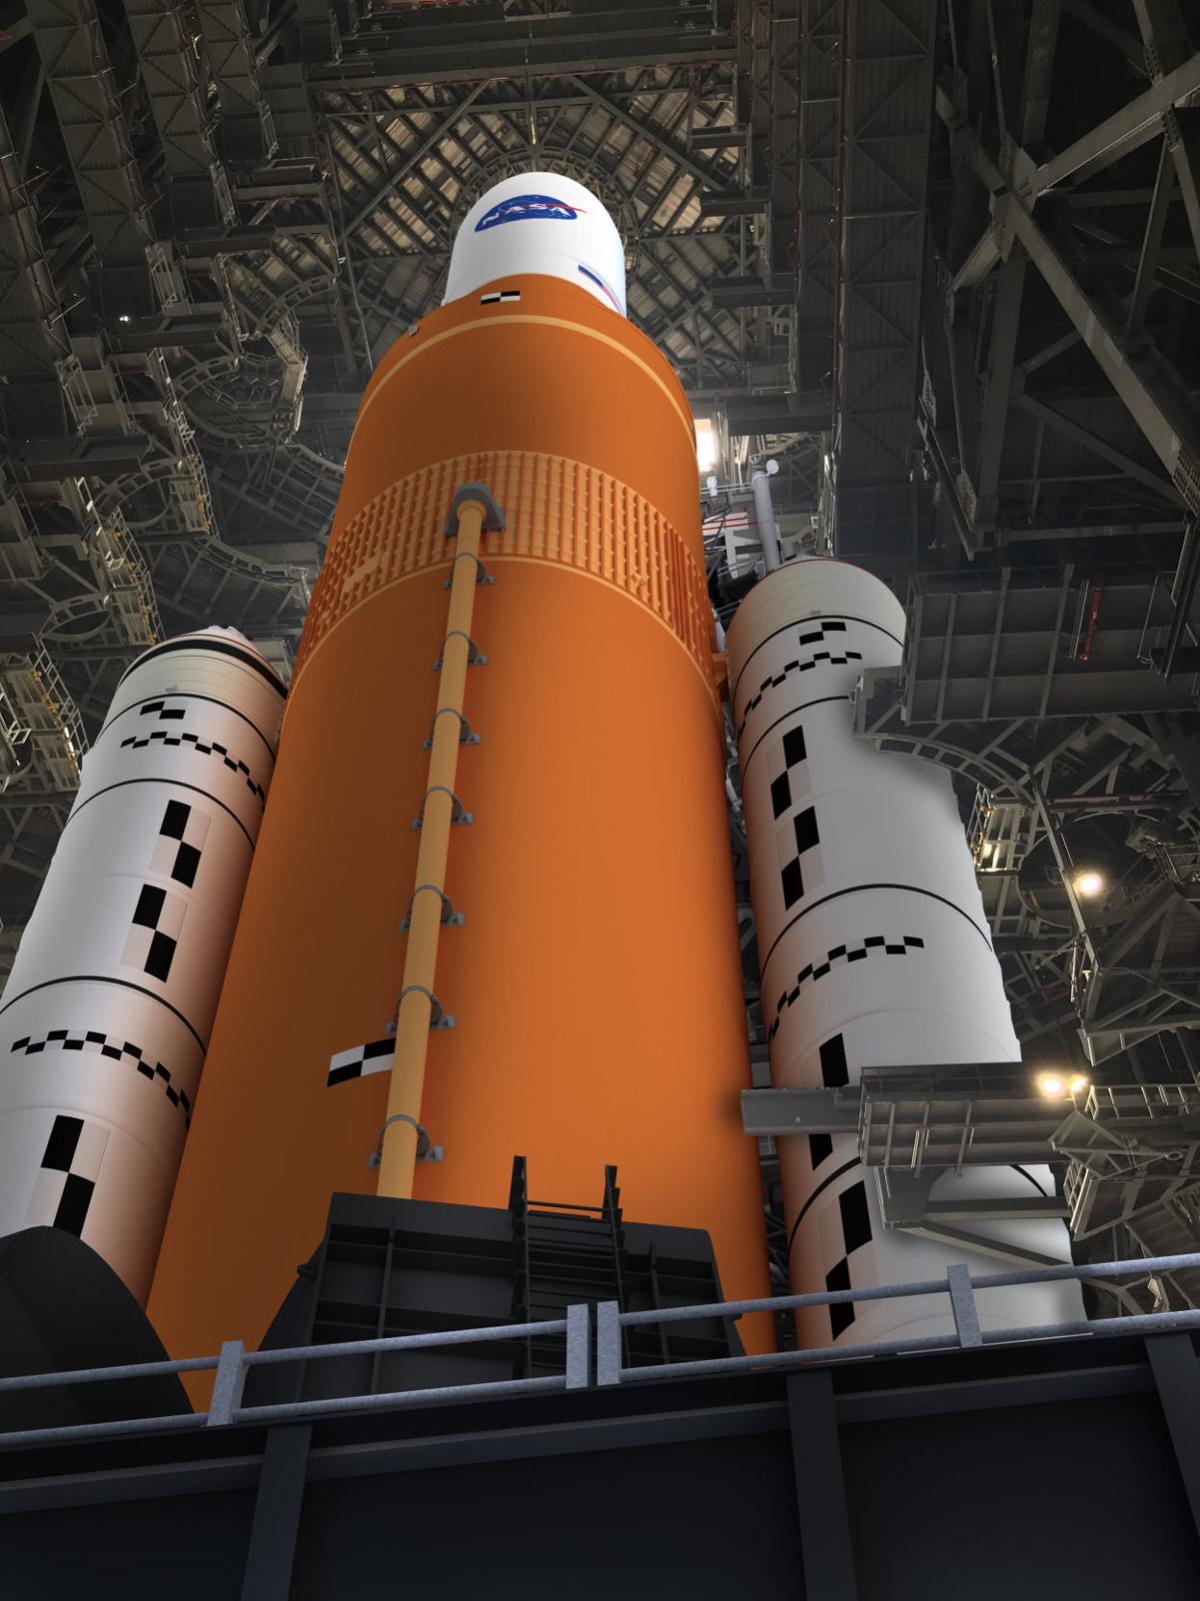 NASA's Space Launch System in its Block 1 configuration